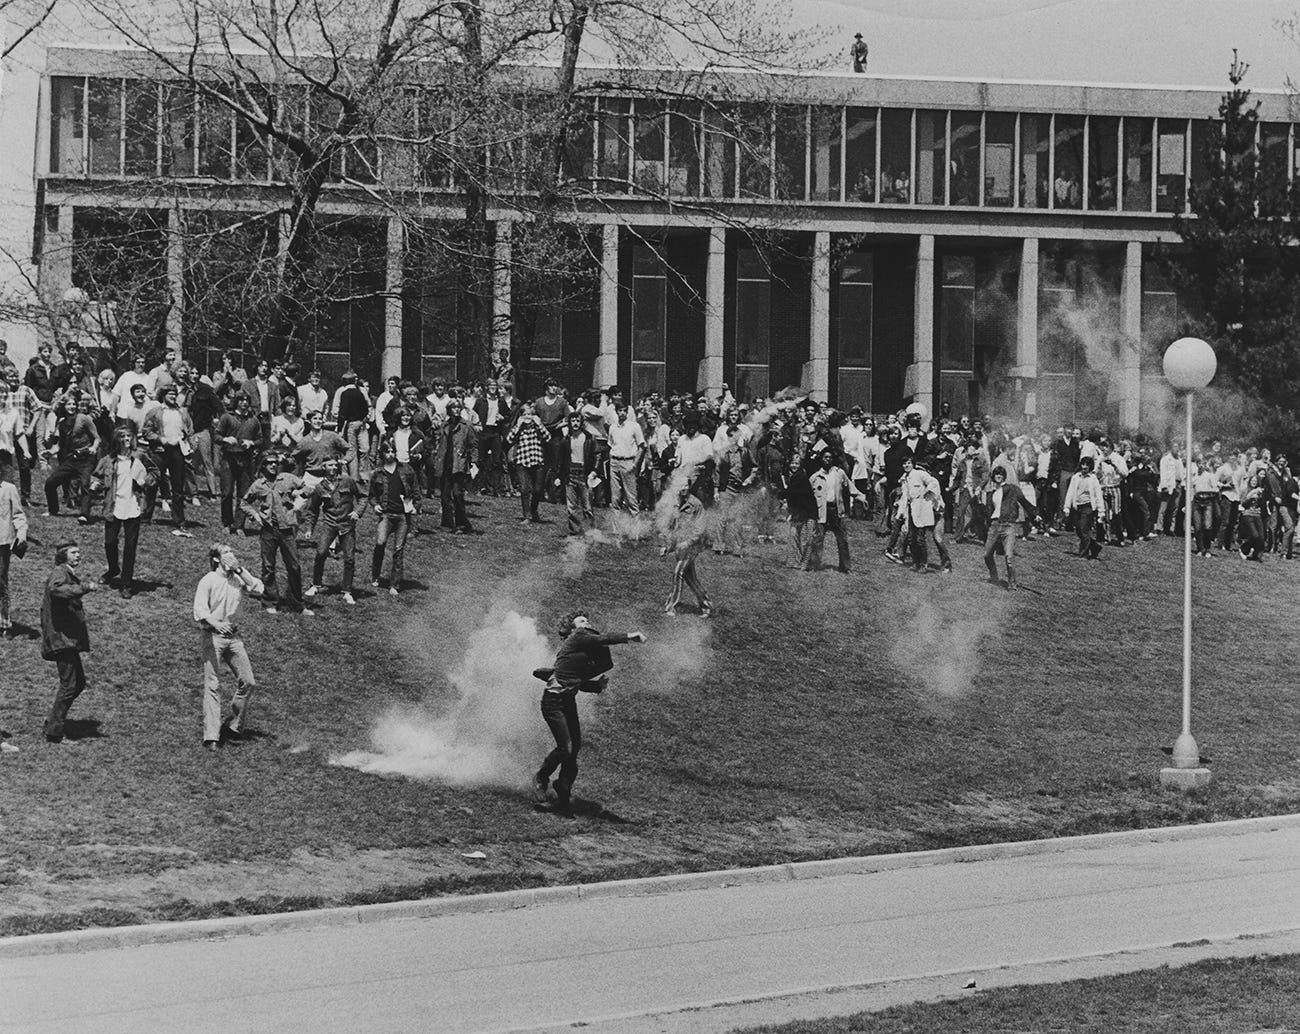 A student throws back a tear gas canister below Taylor Hall on the Kent State campus on May 4, 1970. Protesters clashed with Ohio National Guard units that were sent to campus to quell unrest.